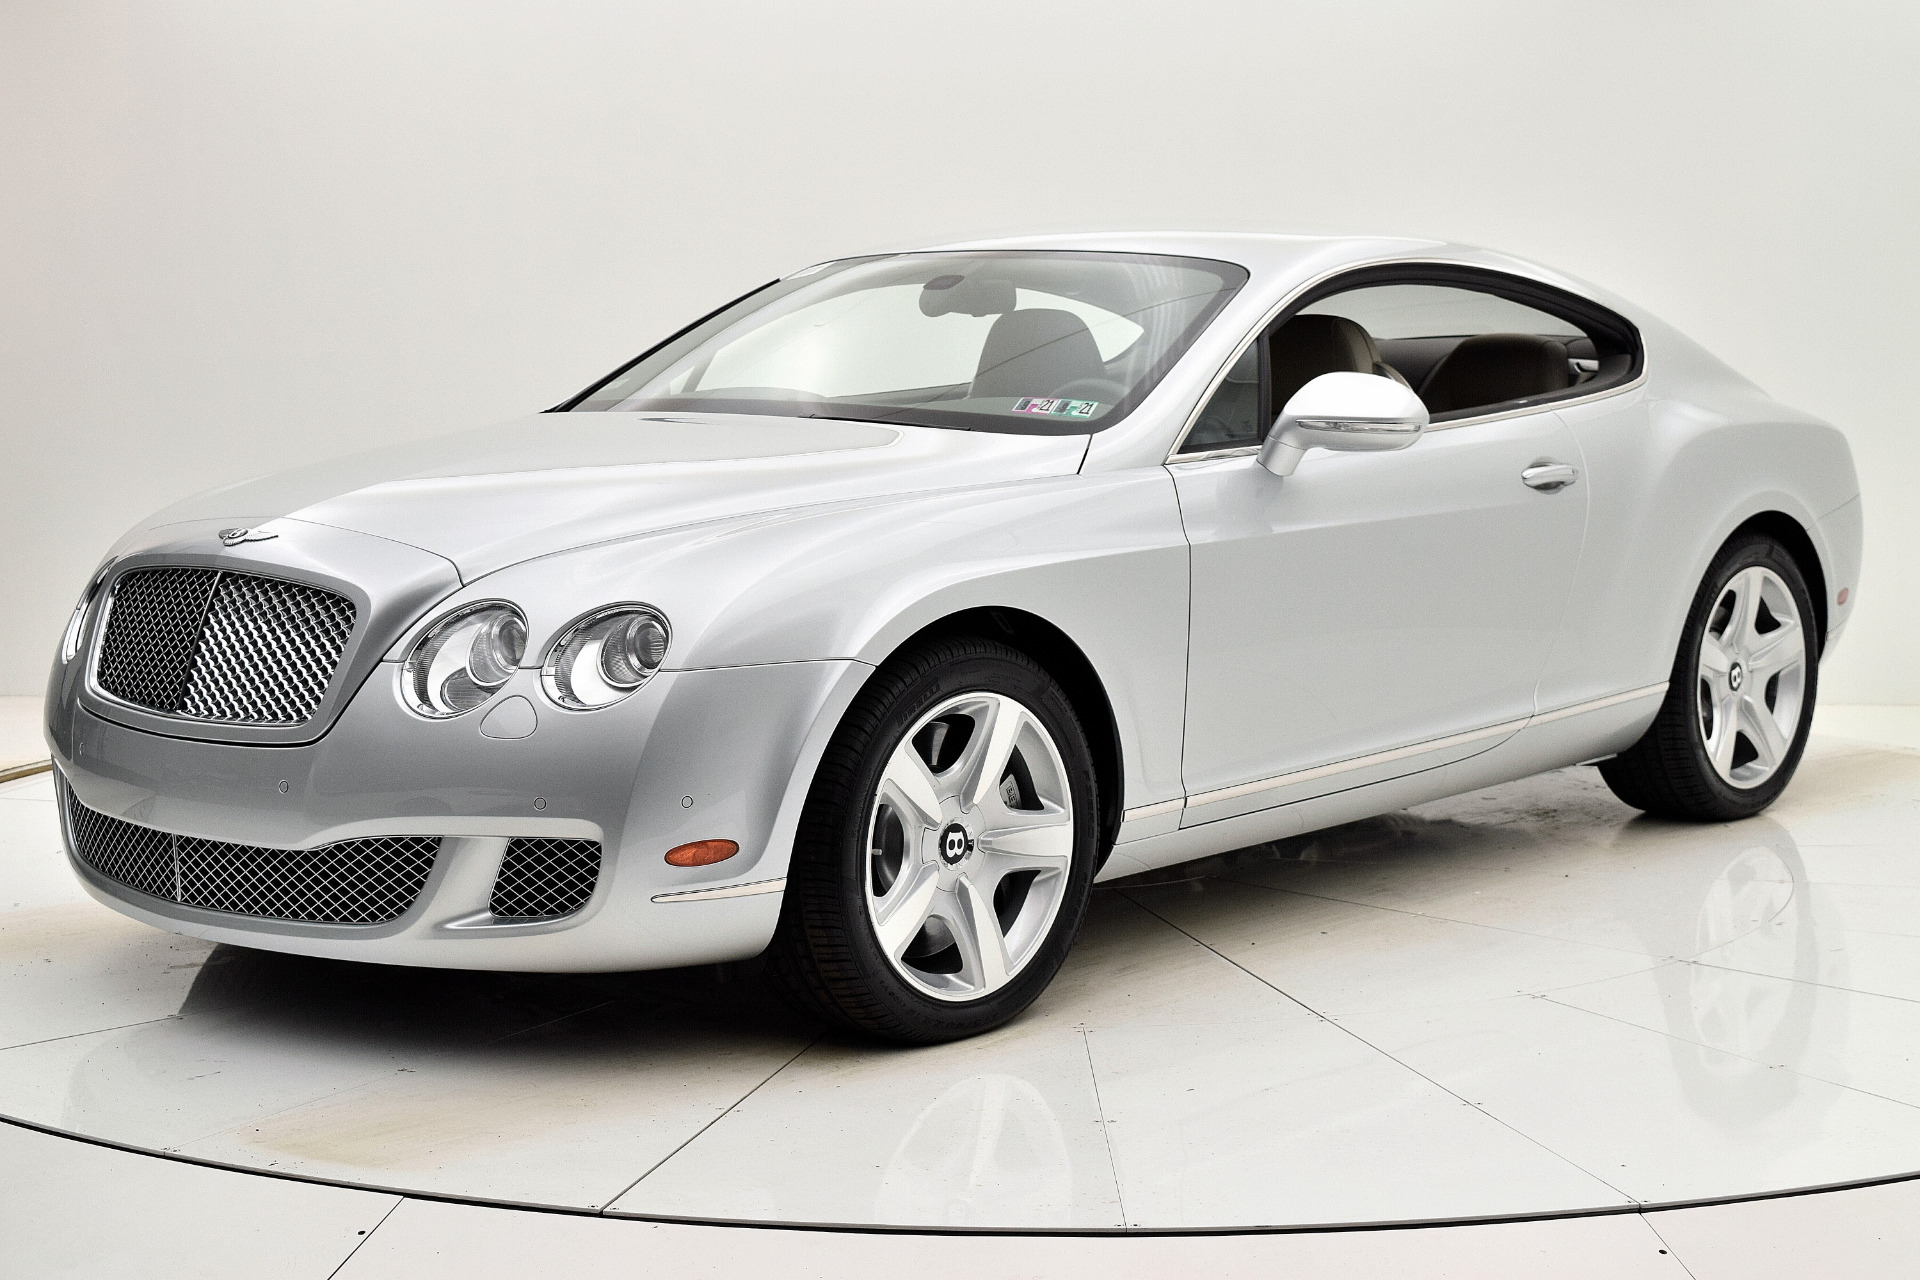 Used 2010 Bentley Continental GT Coupe for sale $75,880 at F.C. Kerbeck Aston Martin in Palmyra NJ 08065 2